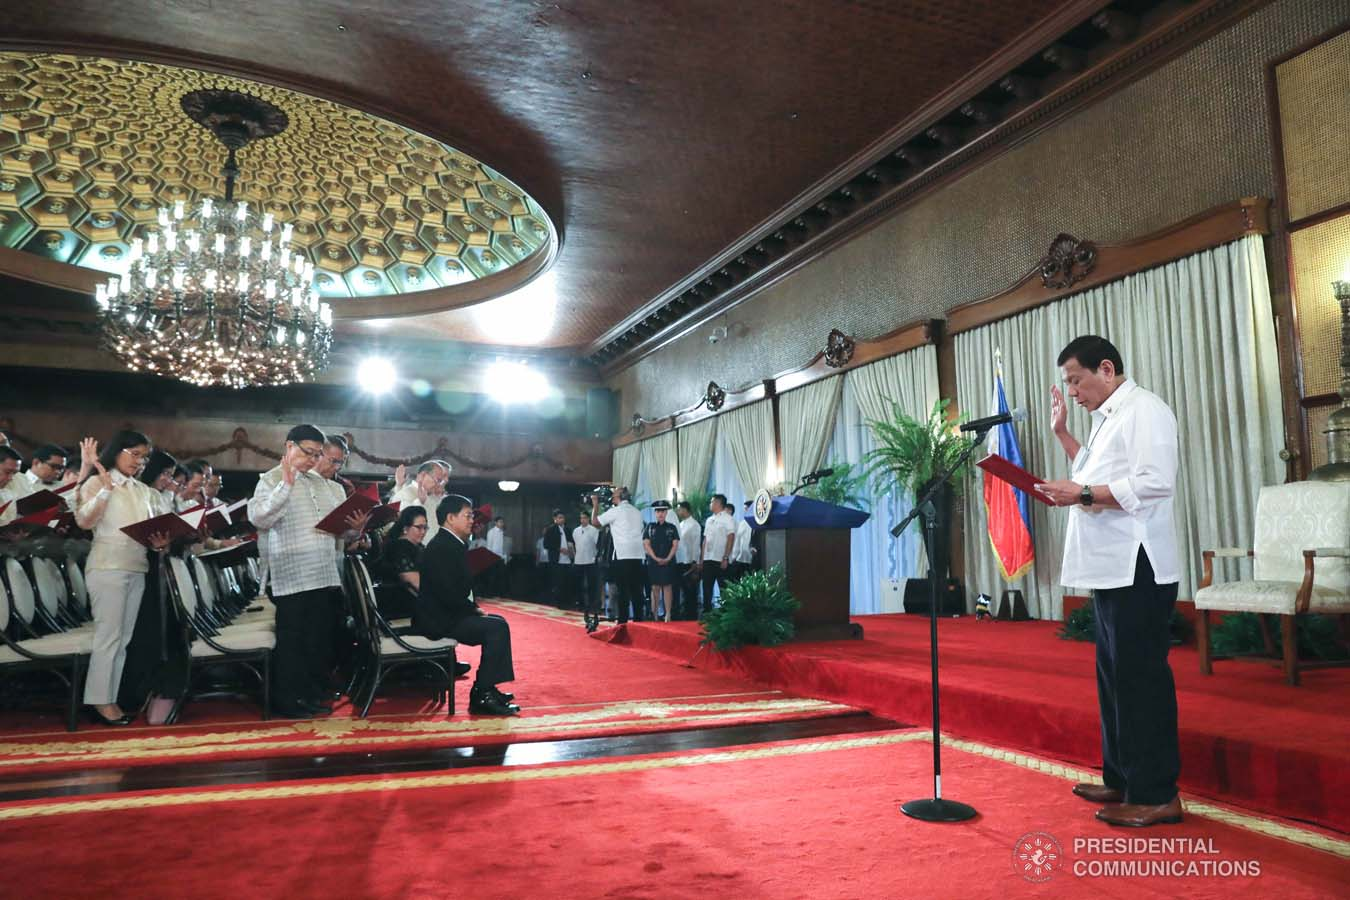 President Rodrigo Roa Duterte swears in the new National Commission for Culture and the Arts officials during the oath-taking ceremony at the Malacañan Palace on February 26, 2020. ROBINSON NIÑAL JR./PRESIDENTIAL PHOTO